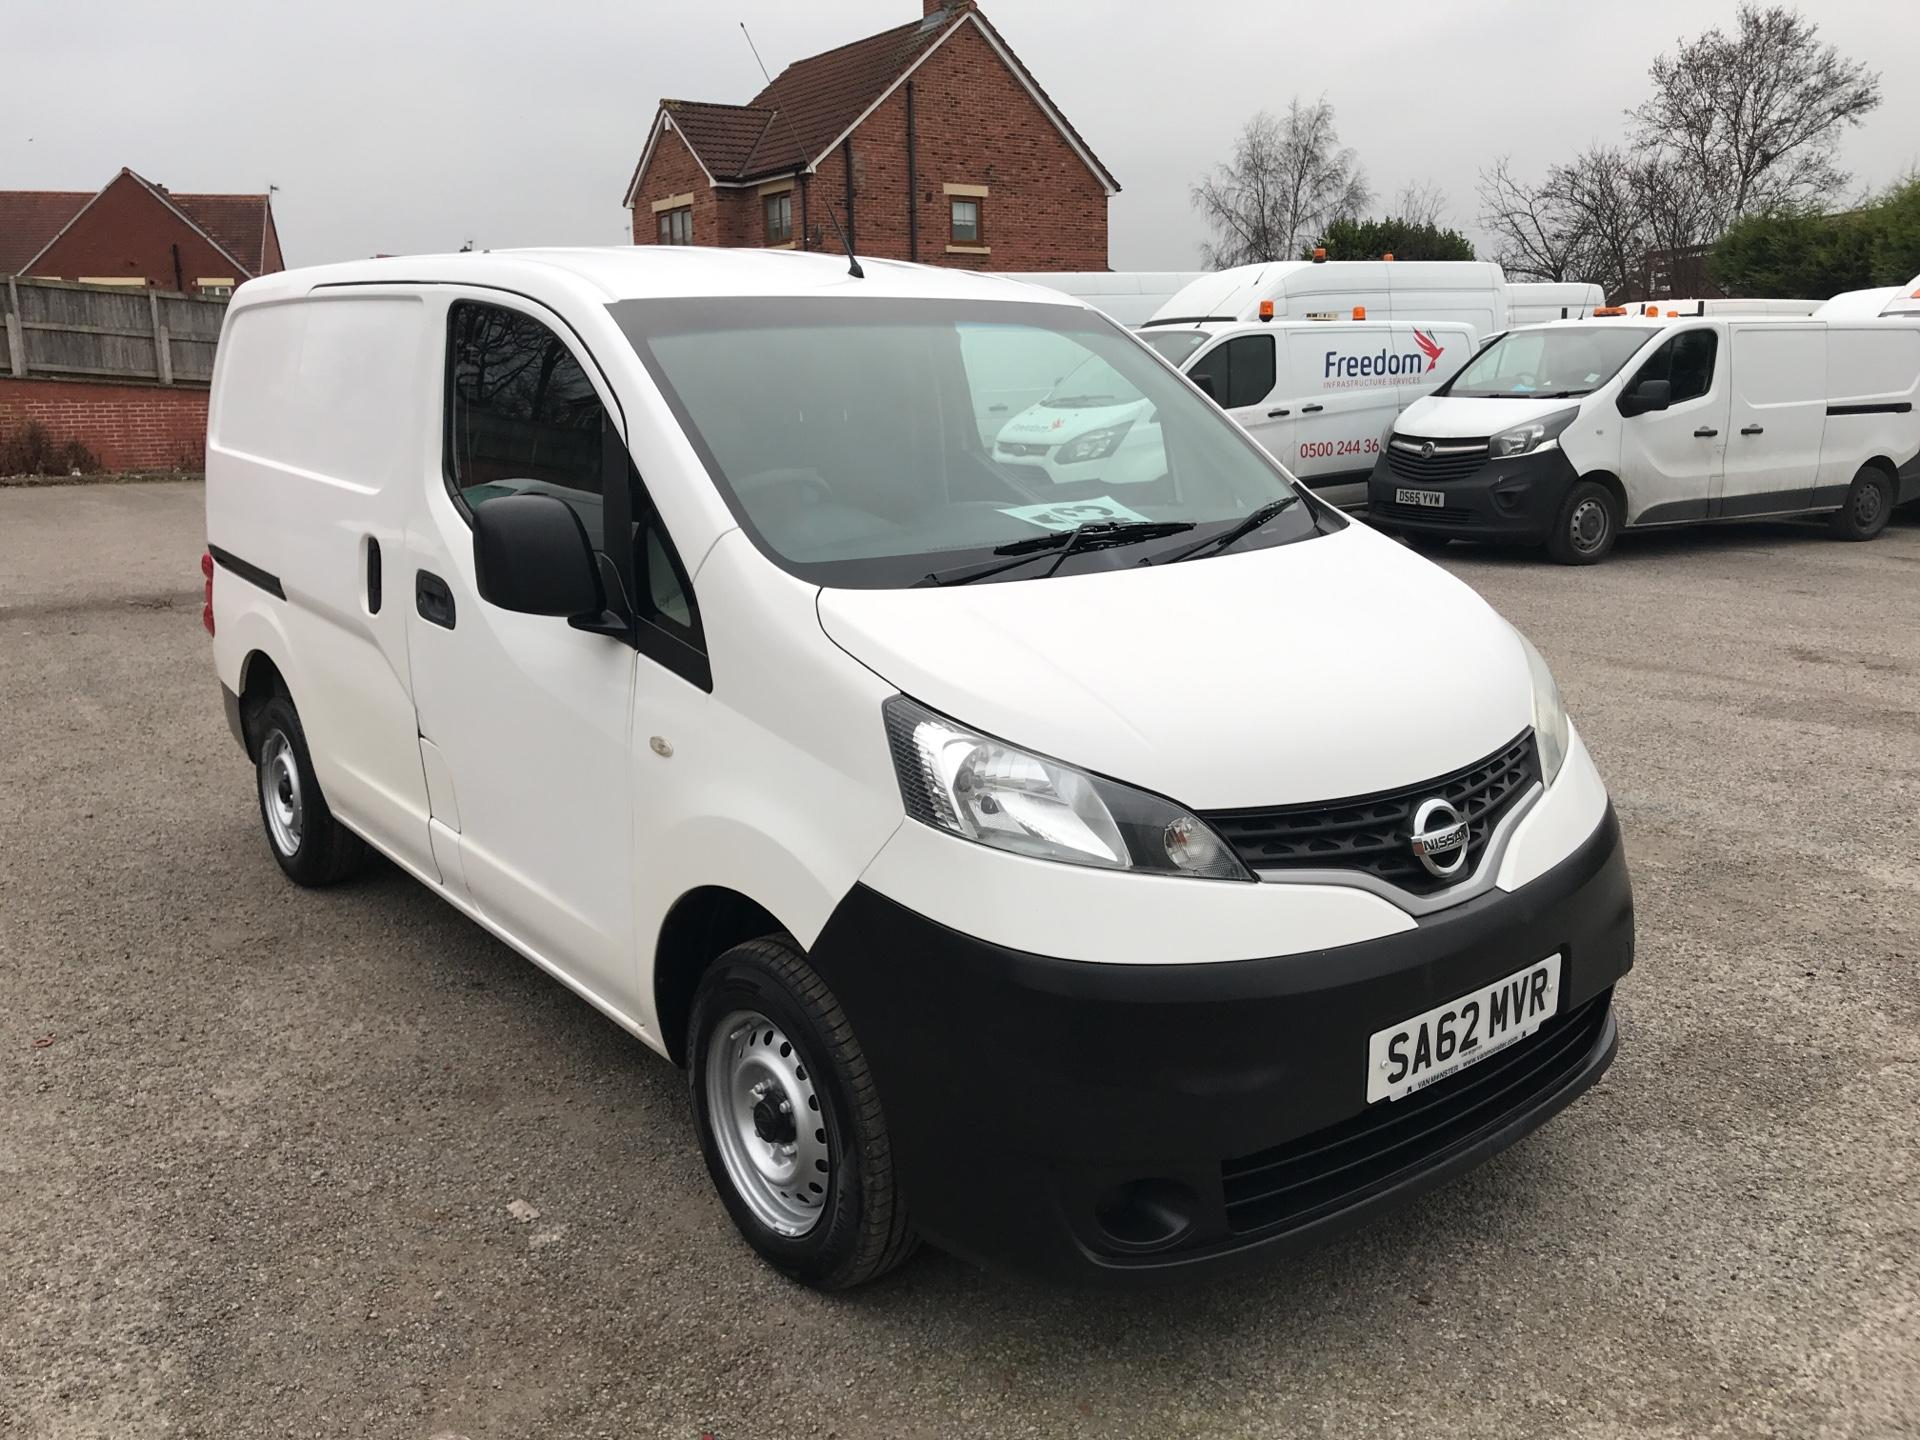 2012 Nissan Nv200 1.5 Dci 89 Se Van EURO 5 -*VALUE RANGE VEHICLE - CONDITION REFLECTED IN PRICE* (SA62MVR)